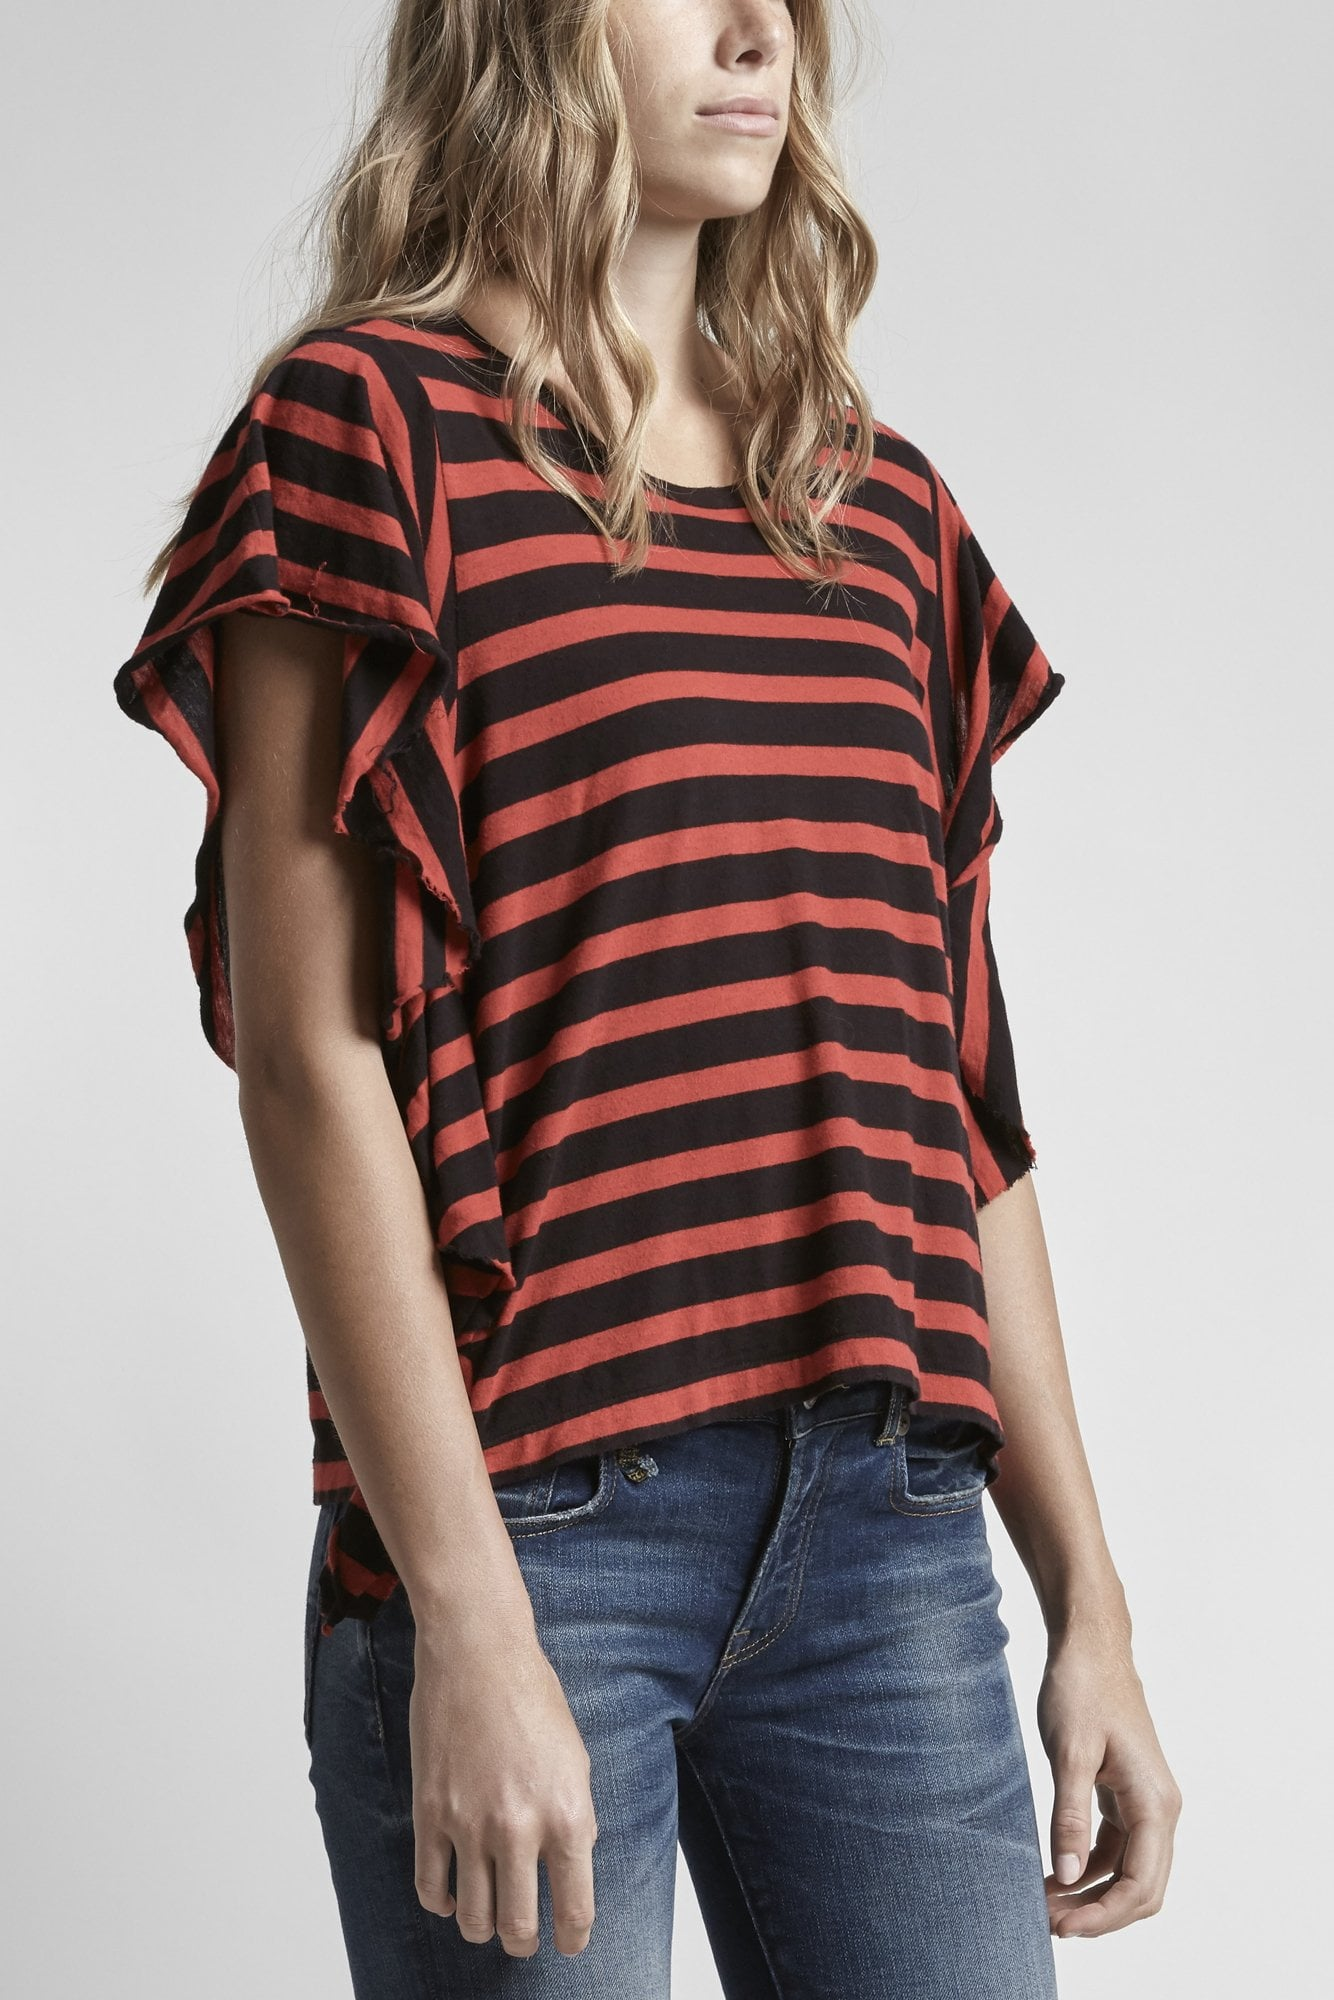 Striped Flutter T-Red w/ Black